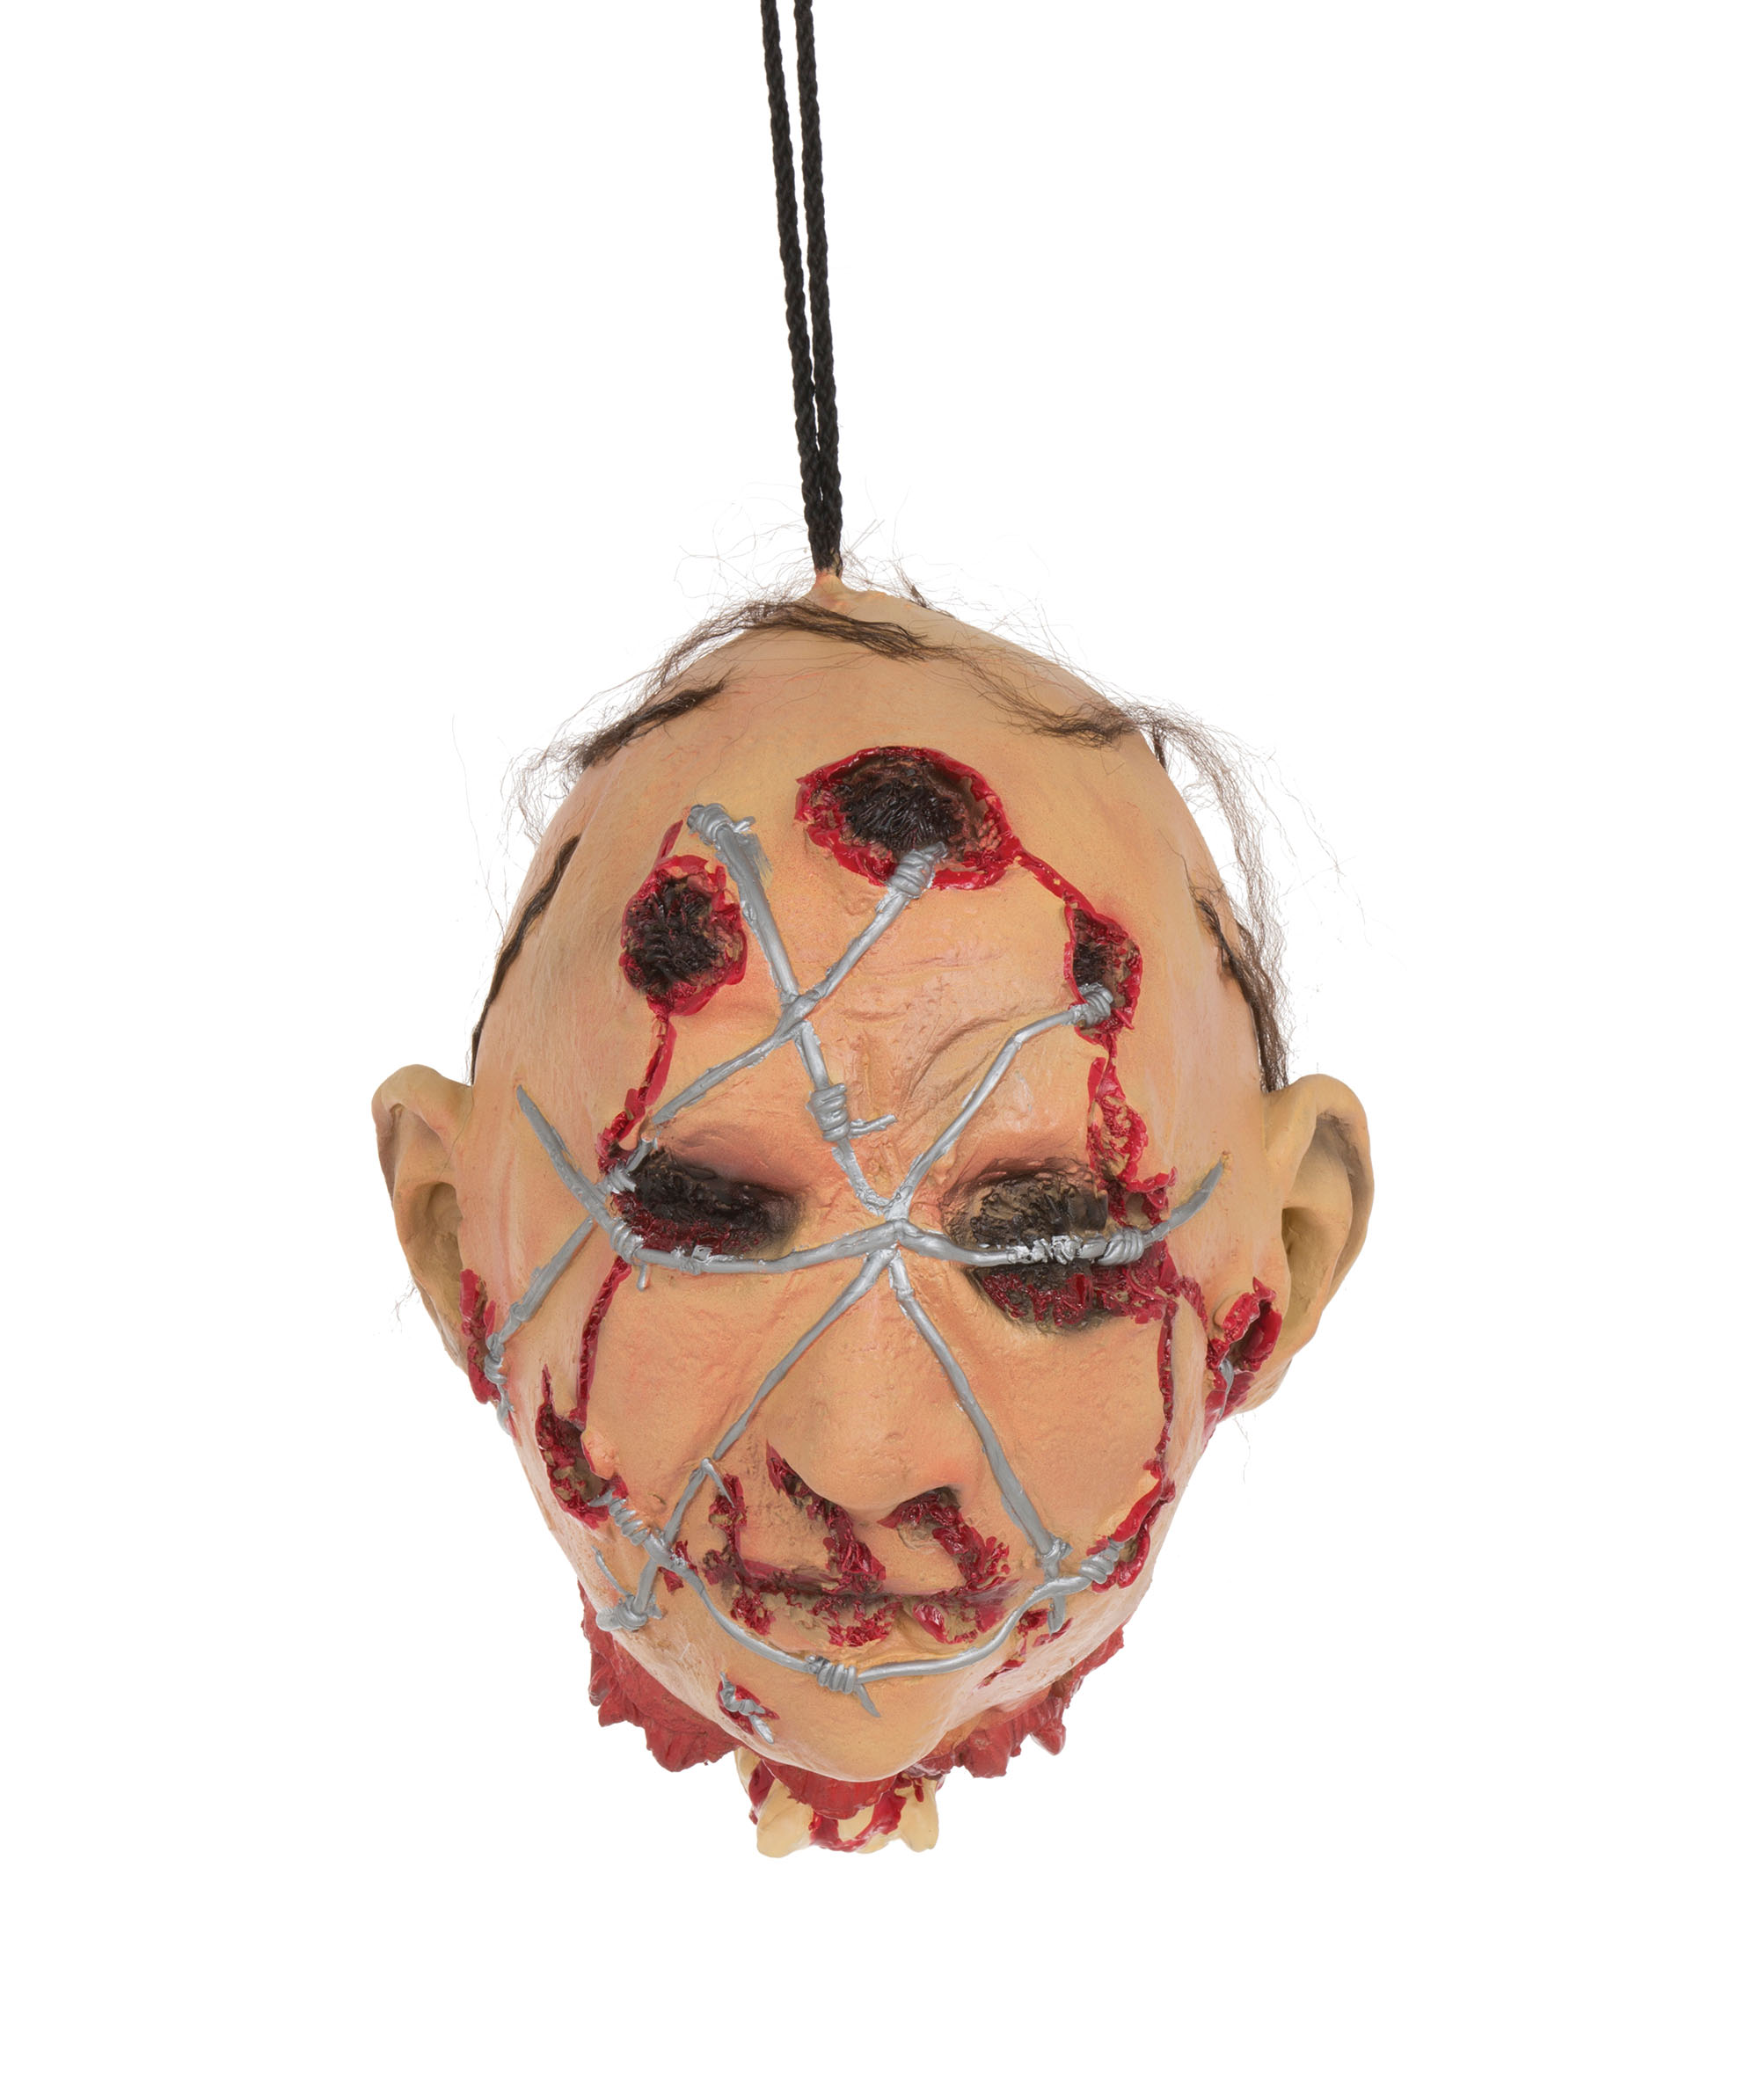 Head with Barbed Wire Hanging Prop